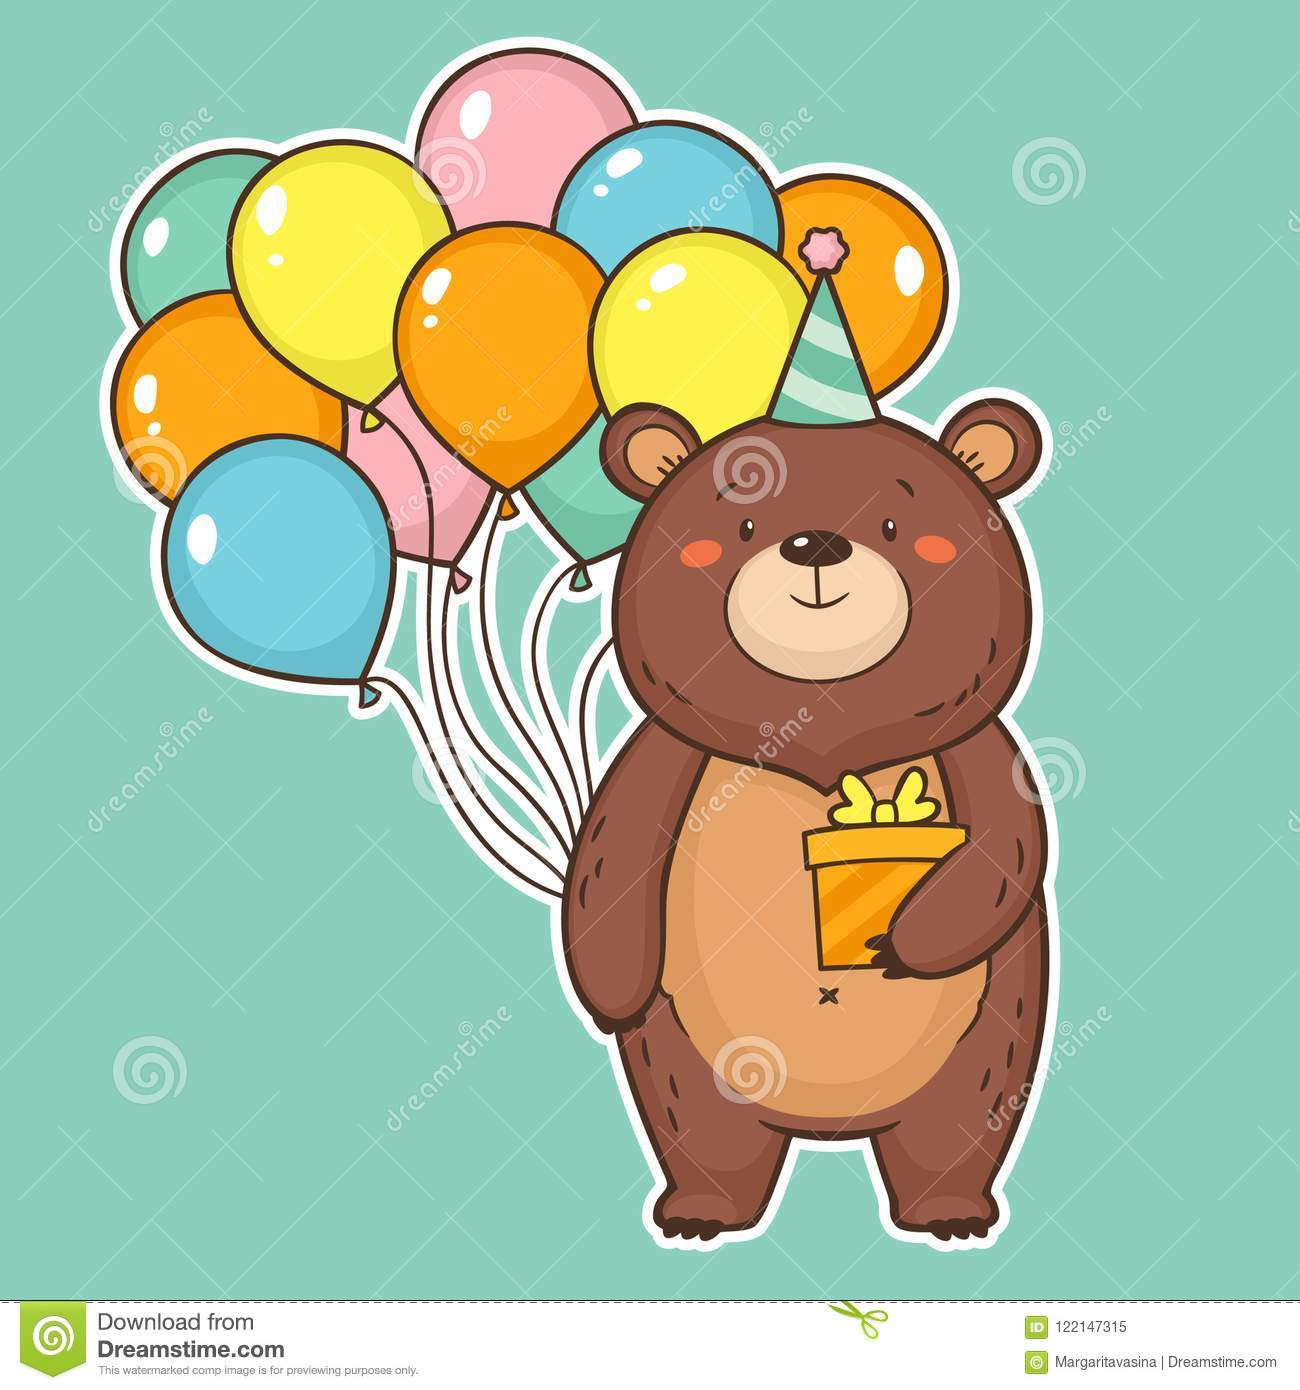 Cute Happy Birthday Card With Funny Bear Holding Air Balloons And A Gift Box Colorful Greeting Vector Illustration